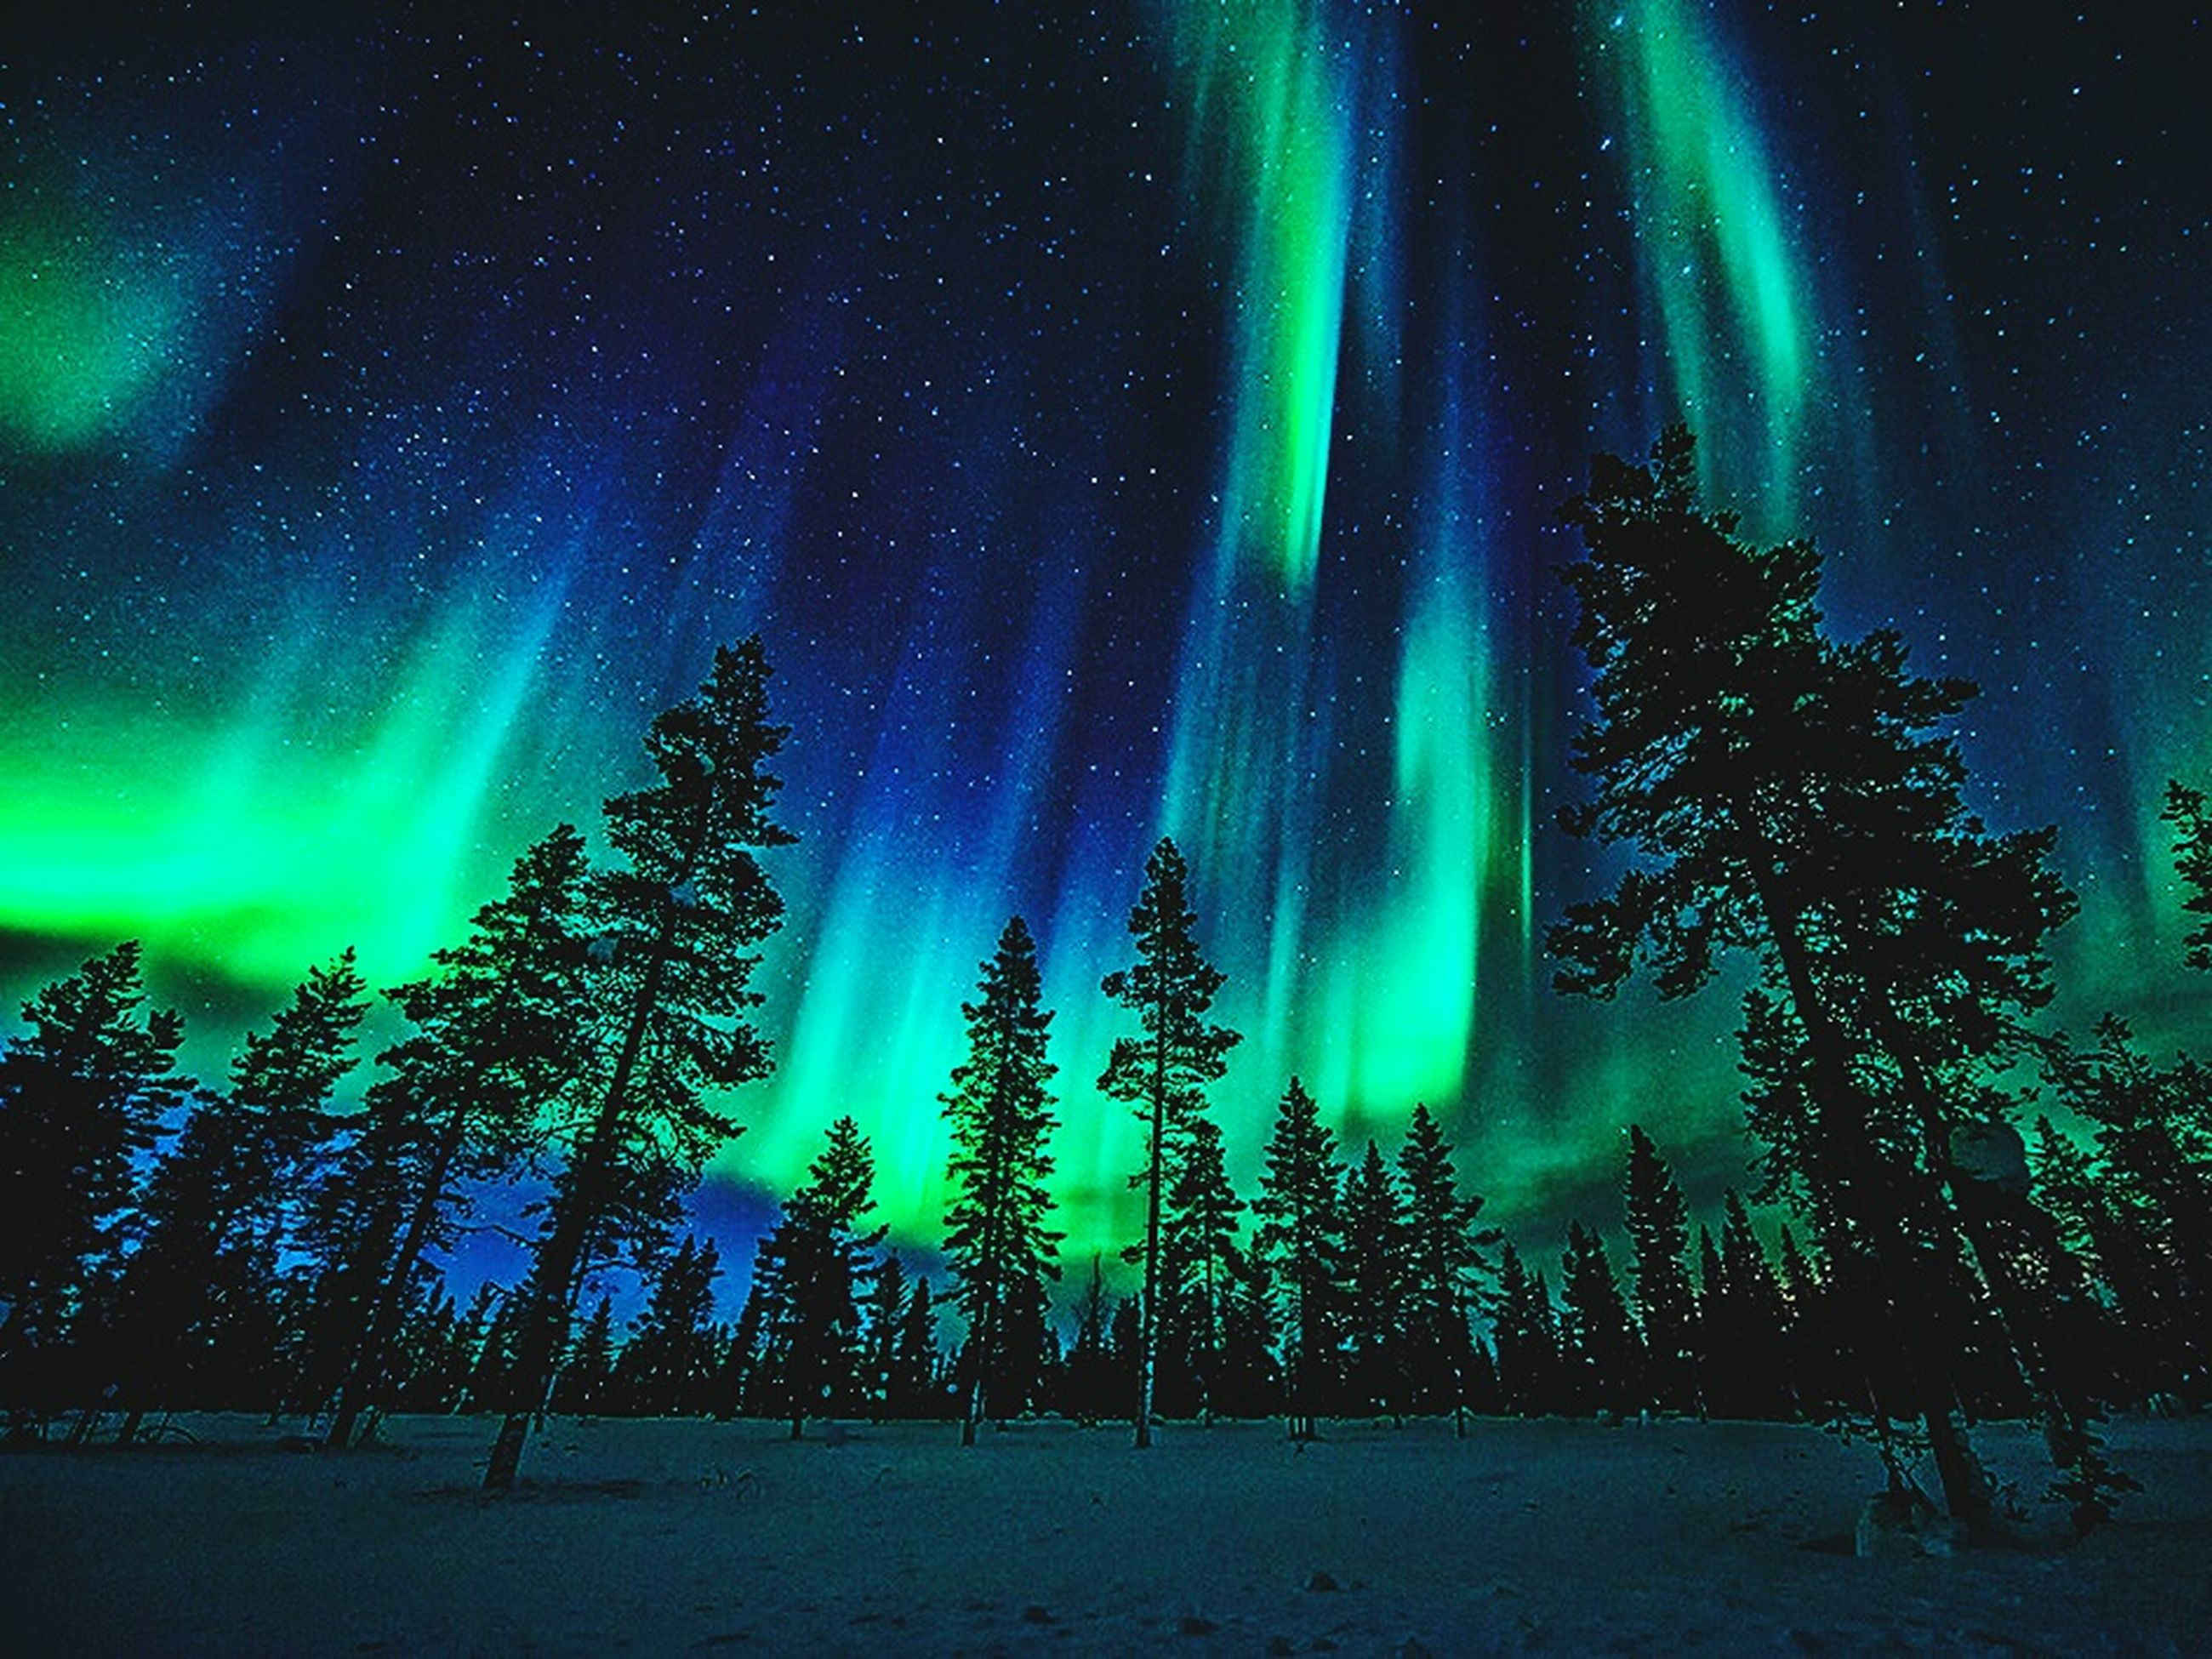 scenics, tranquil scene, low angle view, night, tree, beauty in nature, tranquility, star - space, sky, aurora borealis, majestic, nature, silhouette, dramatic sky, awe, glowing, green color, environment, astronomy, tree trunk, star field, dark, non-urban scene, back lit, outdoors, ethereal, atmospheric mood, multi colored, space, branch